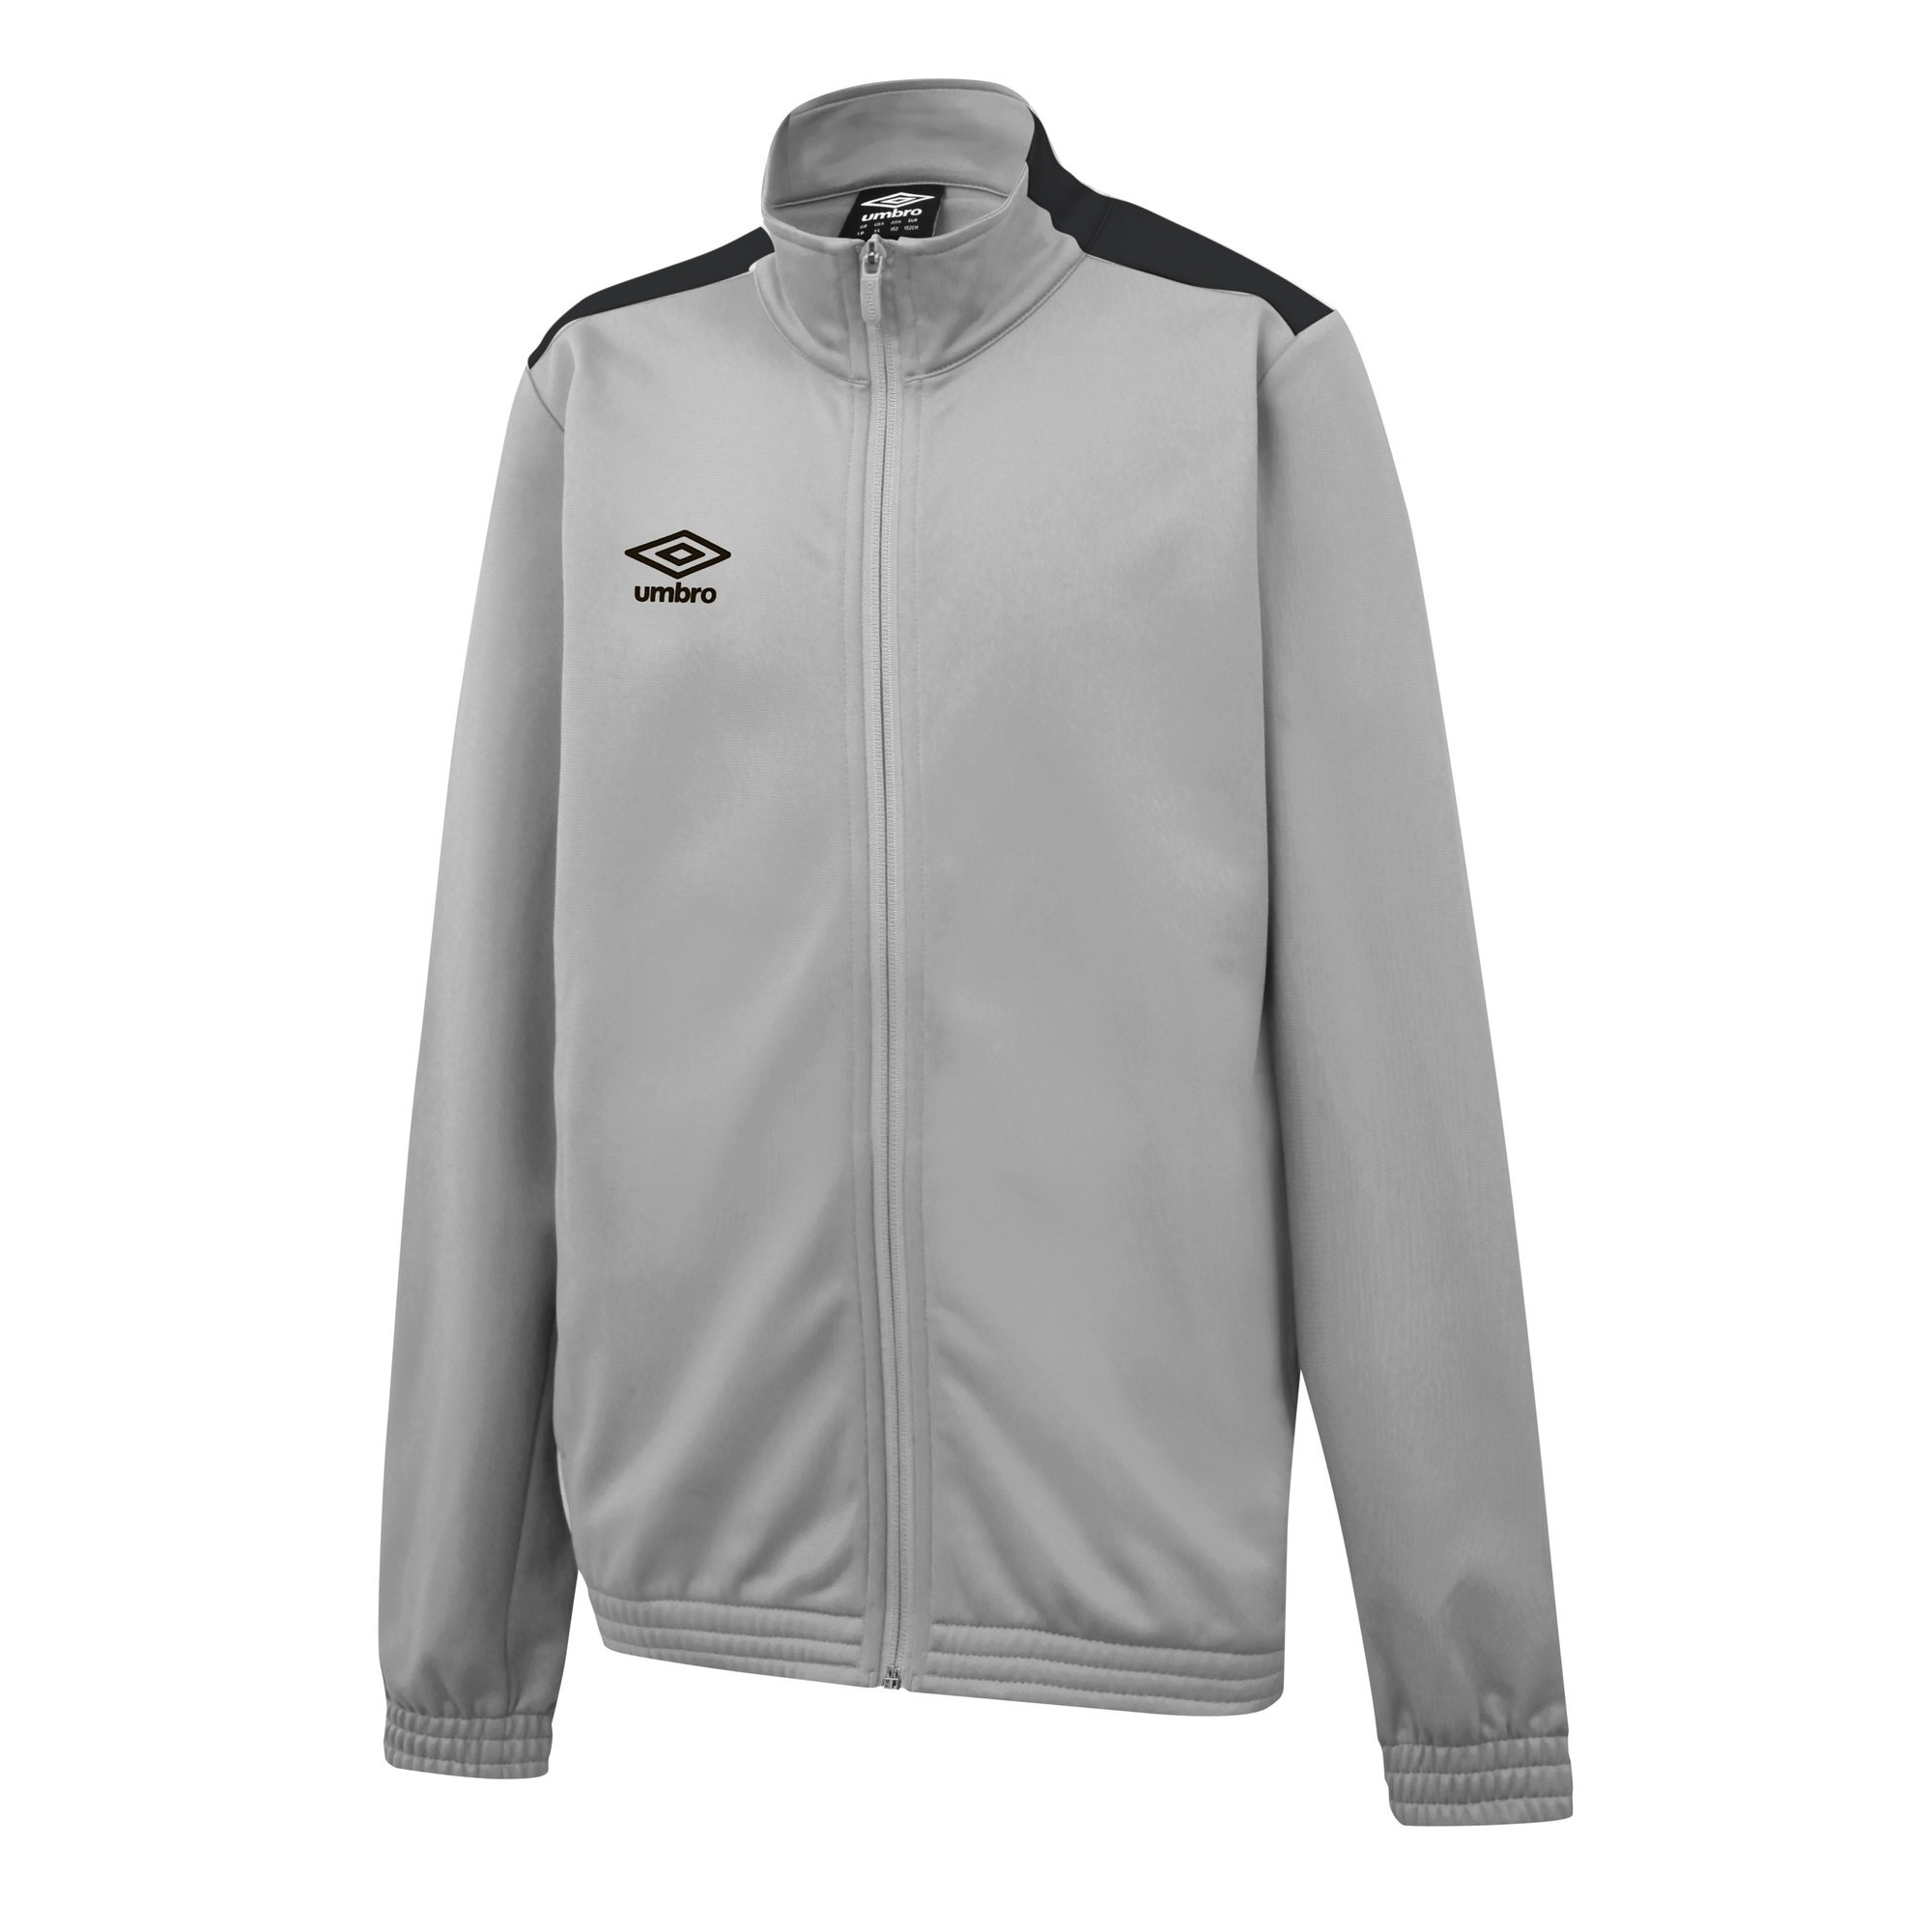 Umbro Mens Knitted Jacket (L) (High Rise Grey/Carbon Grey)